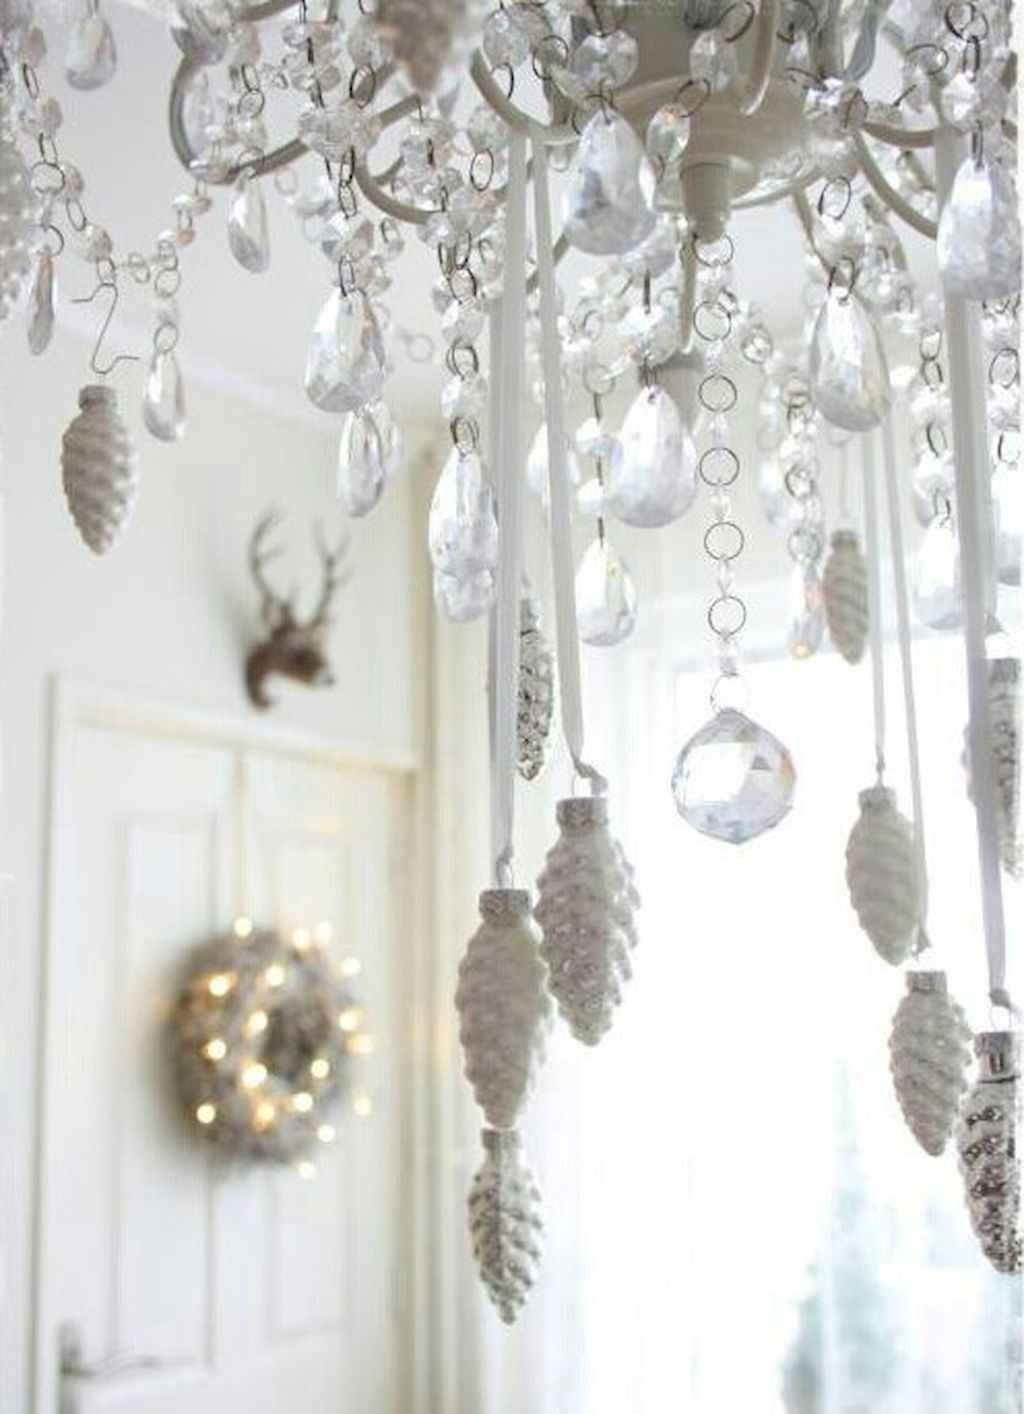 40 first apartment ideas christmas decorations shabby chic. Black Bedroom Furniture Sets. Home Design Ideas